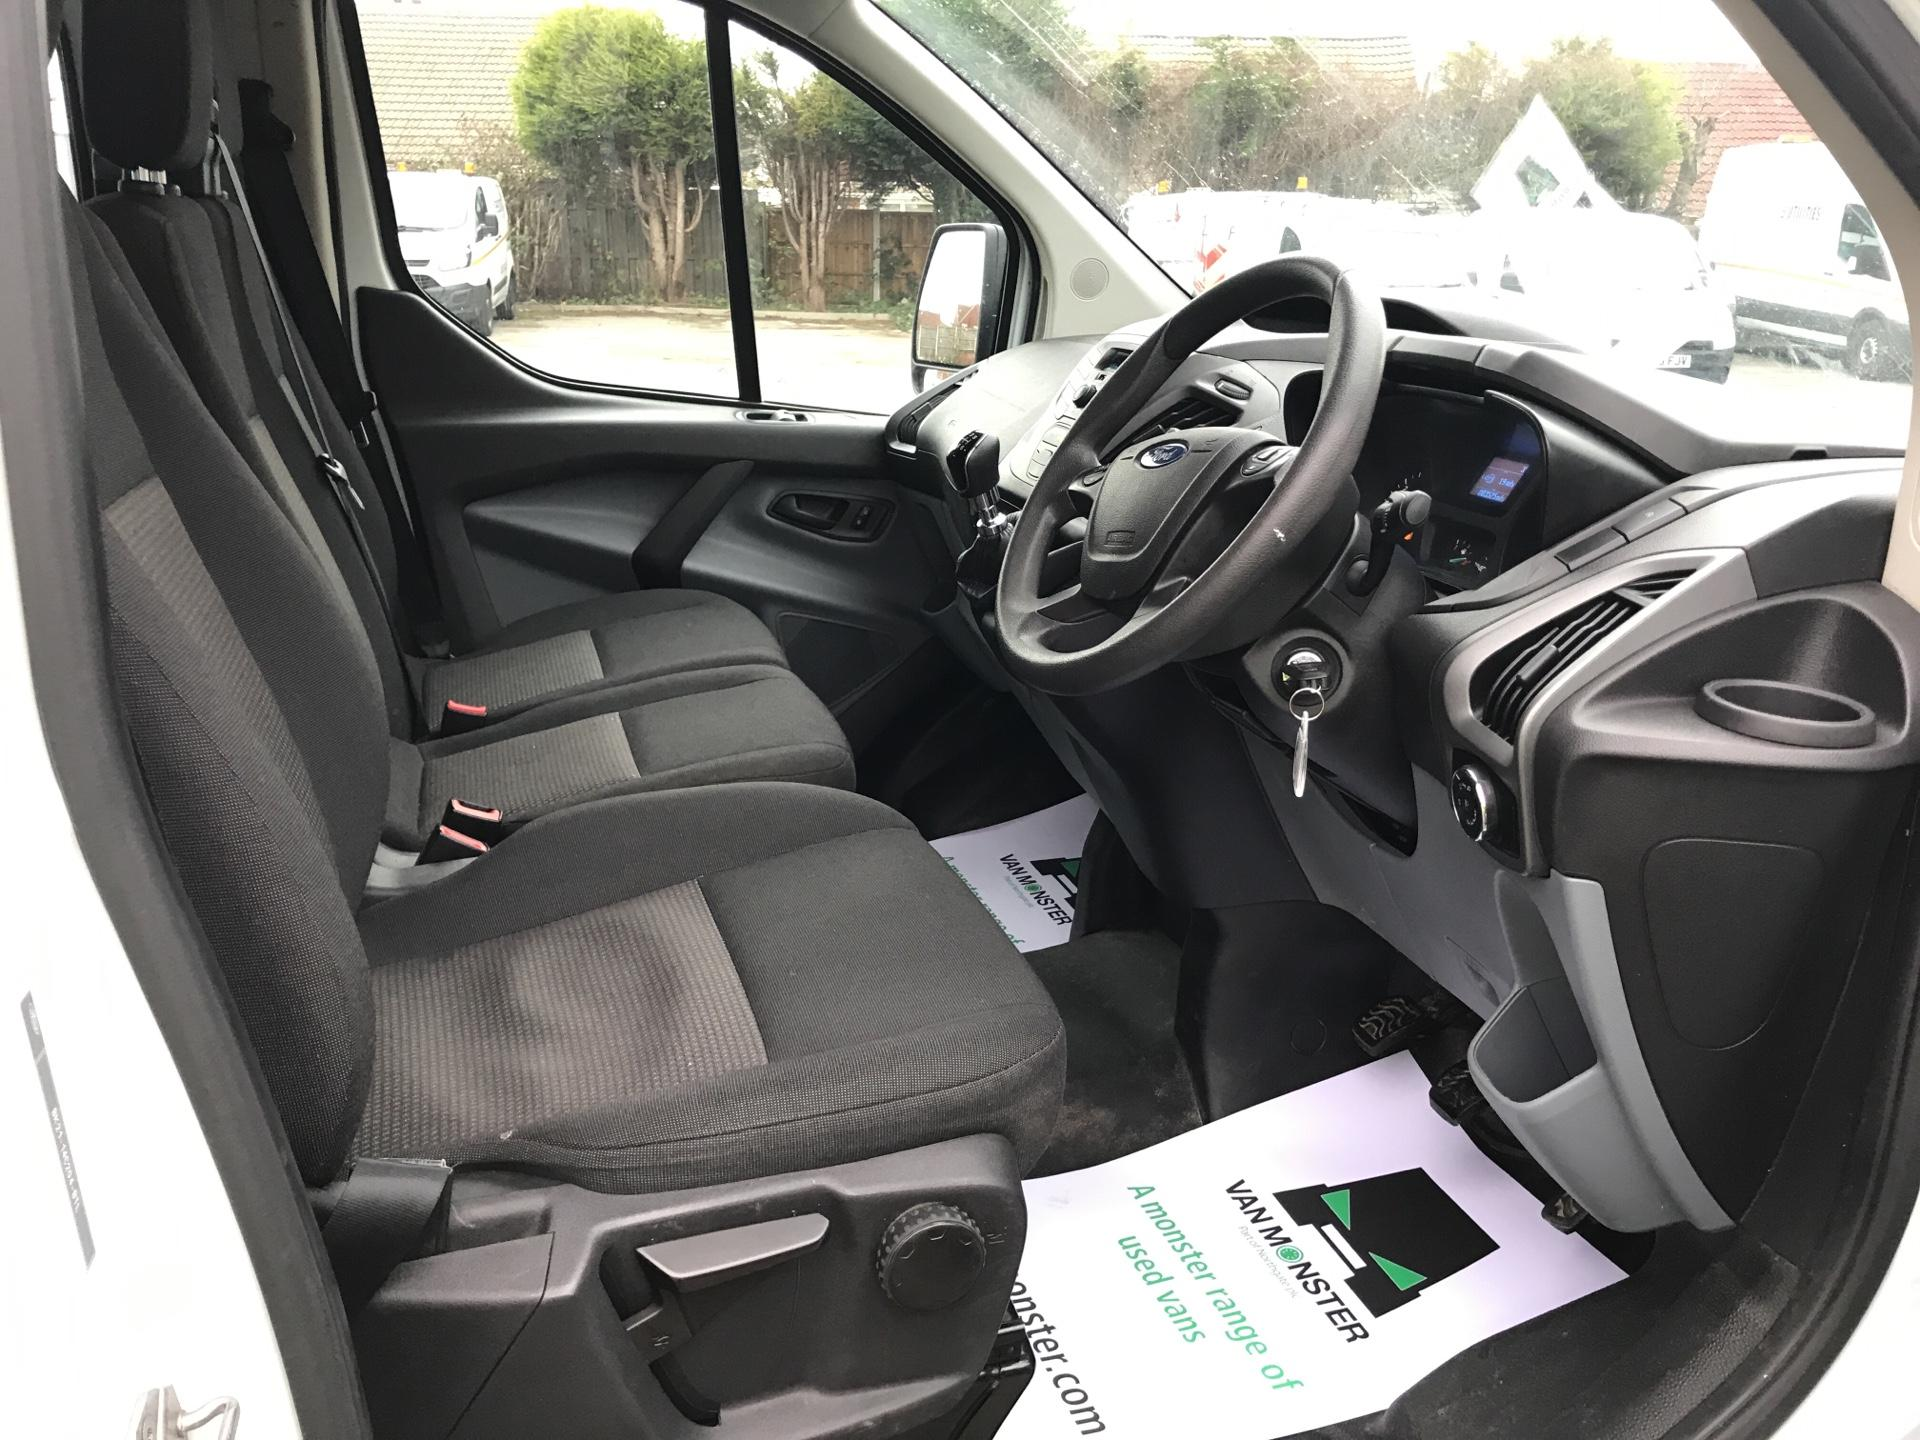 2015 Ford Transit Custom 2.2 Tdci 125Ps Low Roof Kombi Van euro 5 - VALUE RANGE - CONDITION REFLECTED IN PRICE  (FL15XJE) Image 9